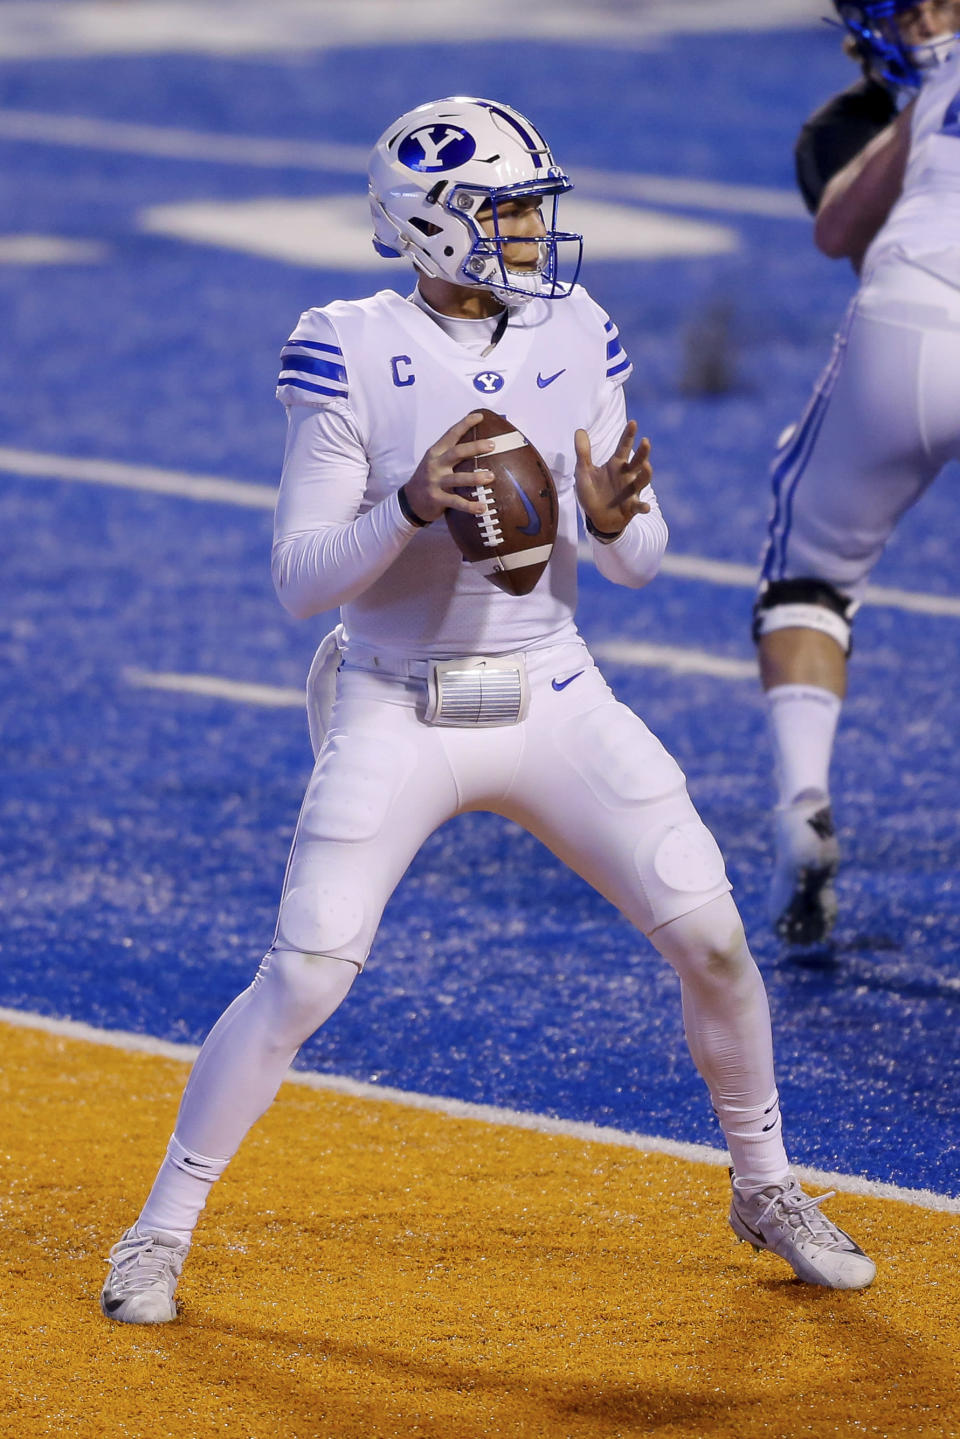 BYU quarterback Zach Wilson (1) looks for a receiver during the first half of the team's NCAA college football game against Boise State on Friday, Nov. 6, 2020, in Boise, Idaho. (AP Photo/Steve Conner)